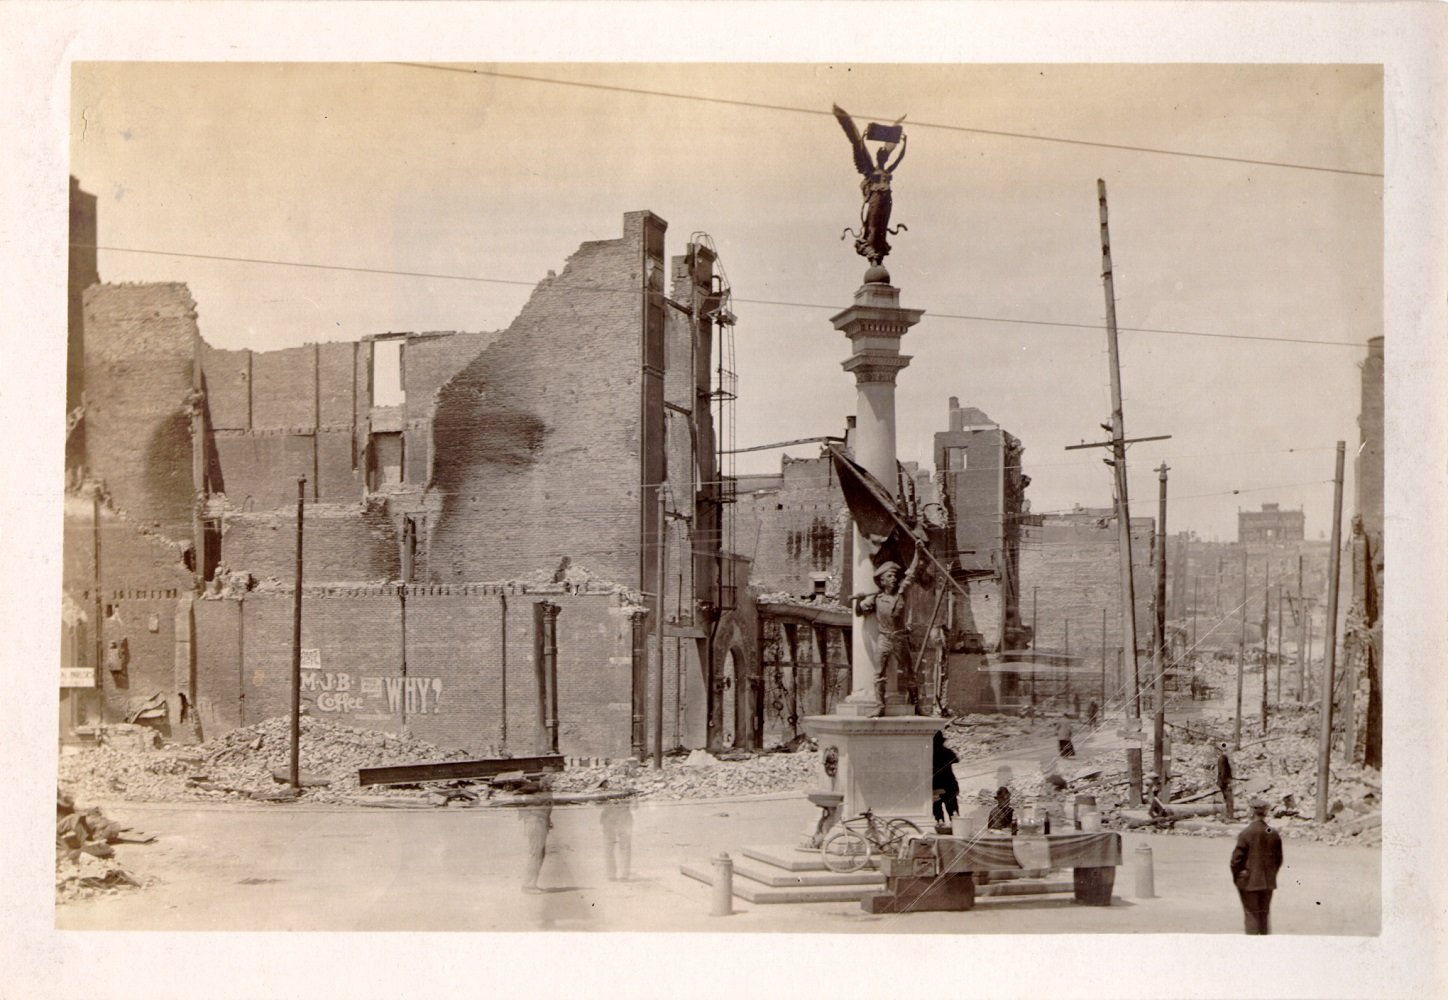 [Native Sons Monument at the intersection of Turk, Mason and Market streets]. 1906. Photo ID #AAC-4064. SAN FRANCISCO HISTORY CENTER, SAN FRANCISCO PUBLIC LIBRARY.